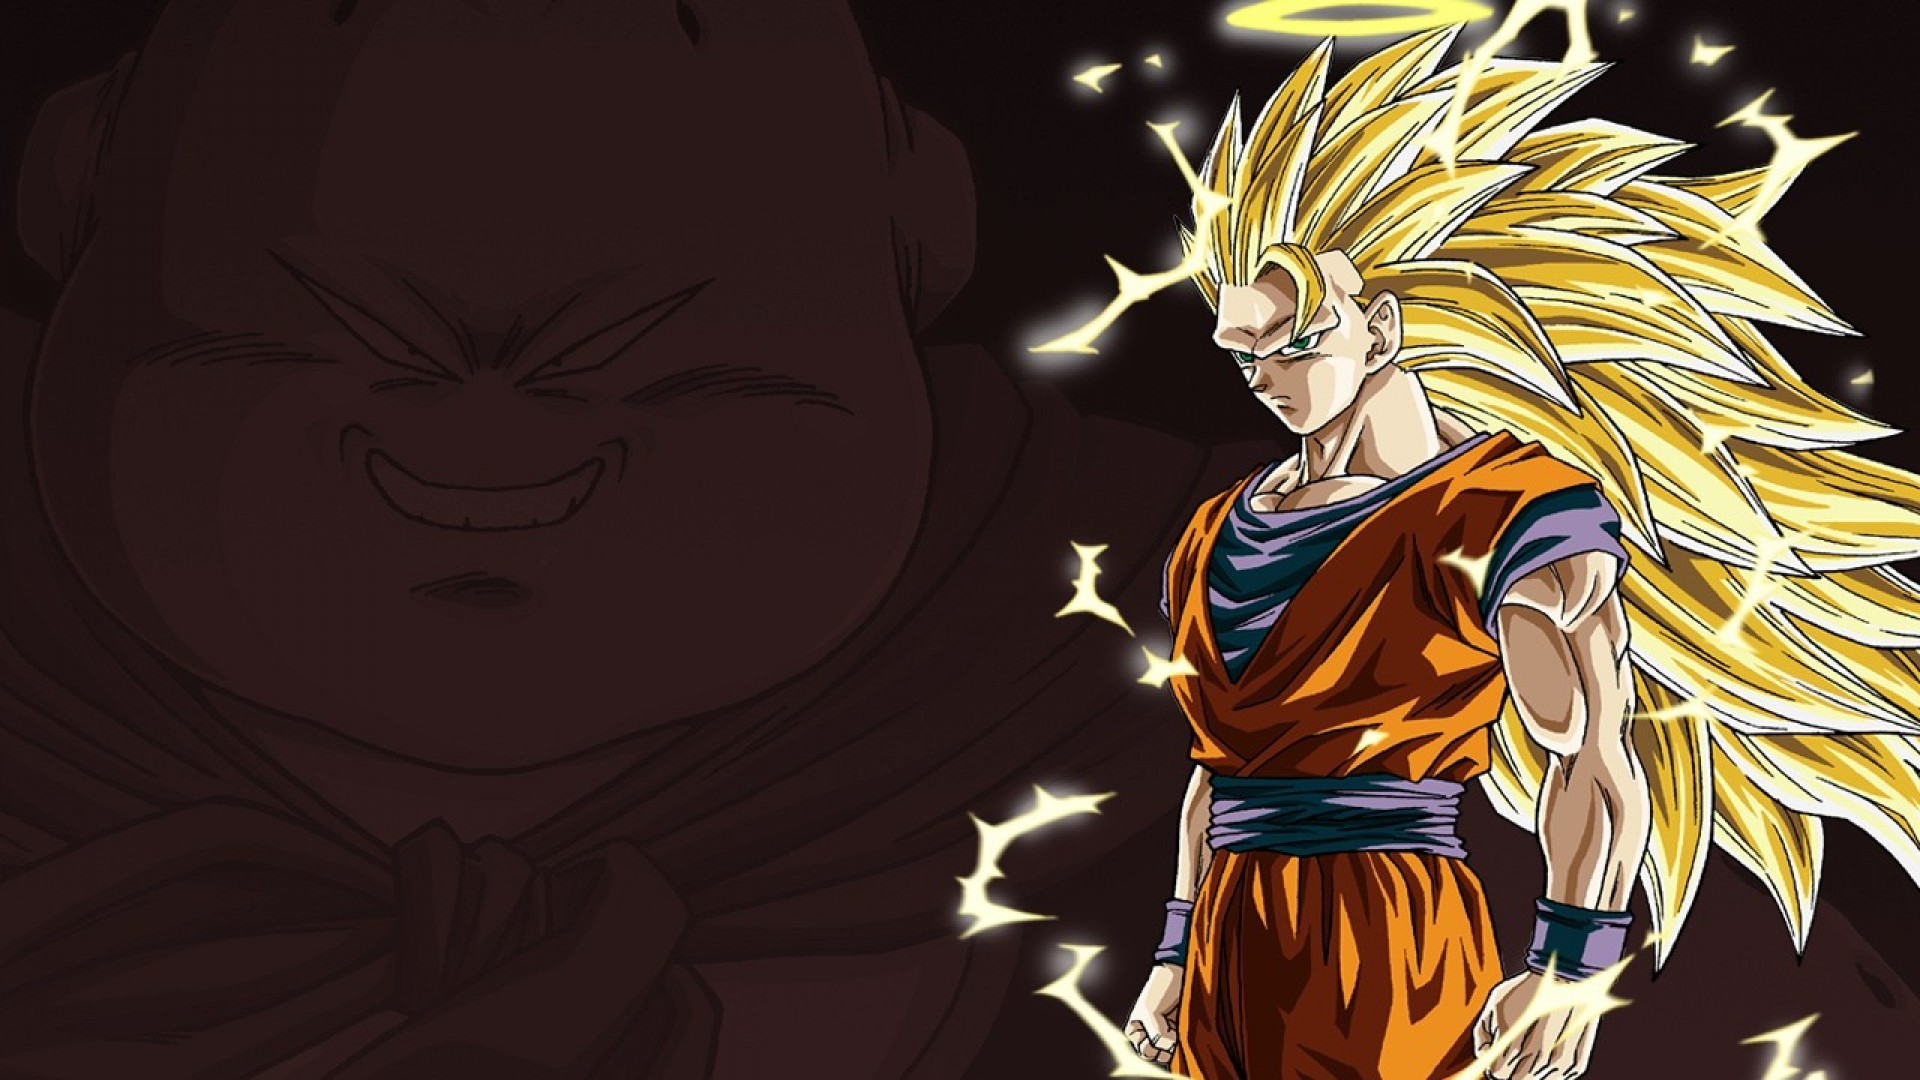 1920x1080 dragon ball z wallpapers download free dragon ball z hd wallpaper